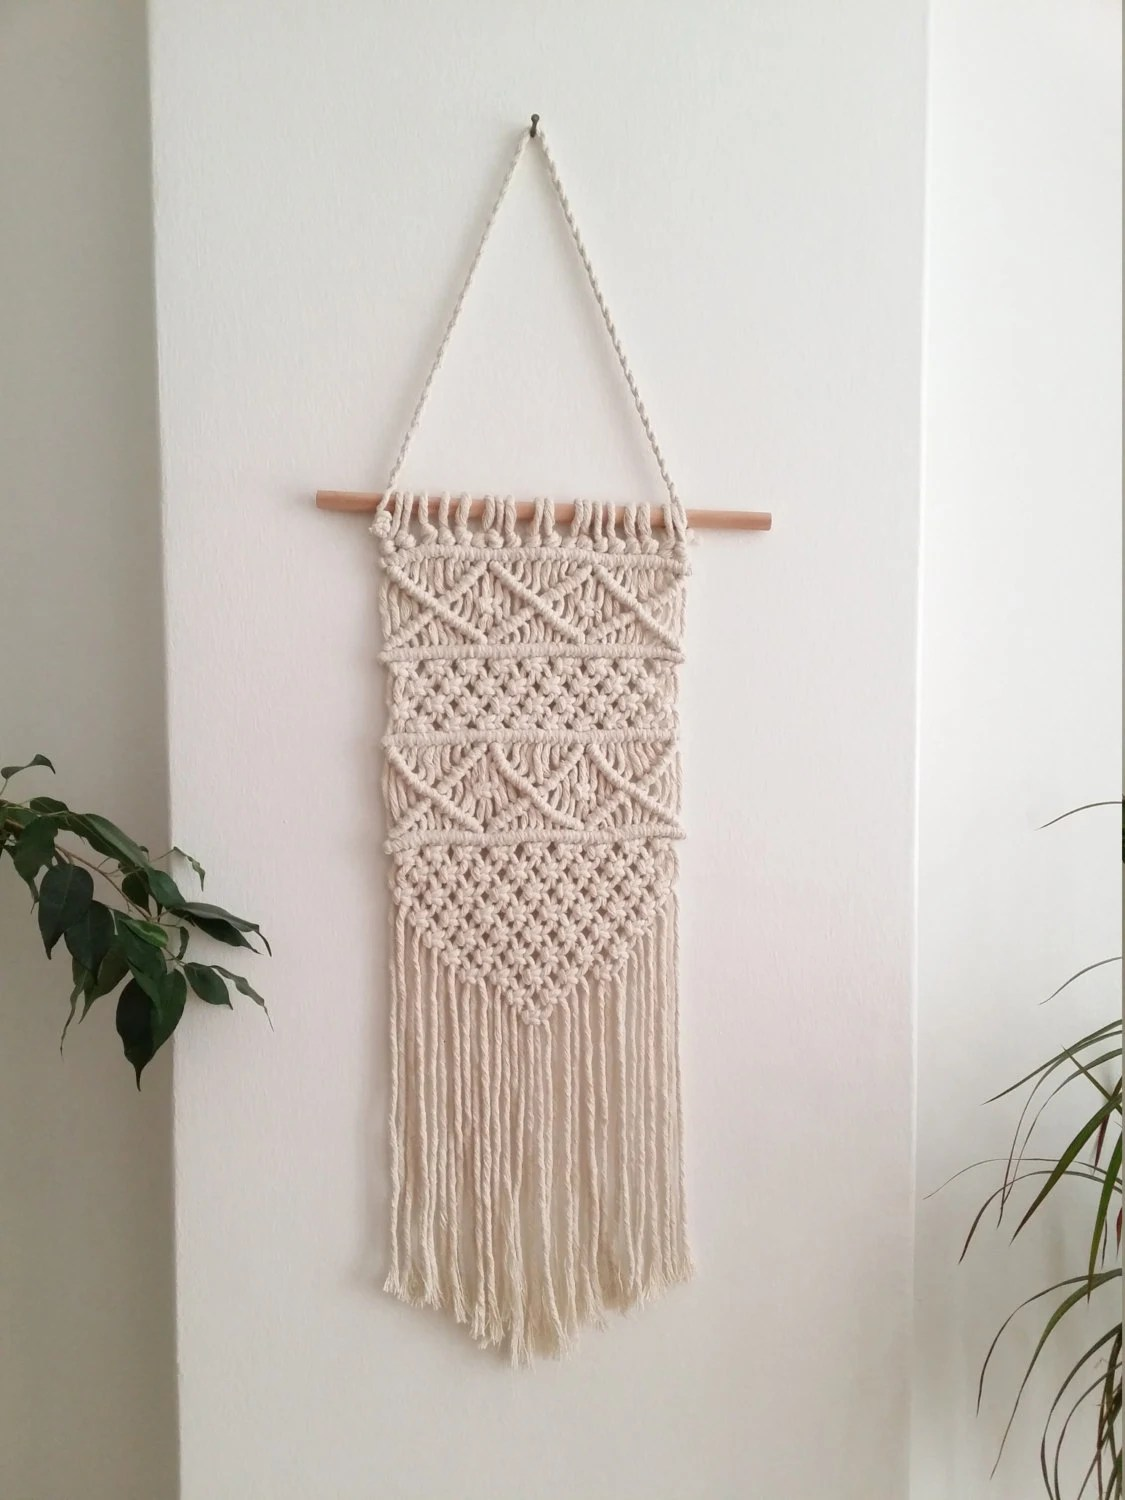 Hanging Wall Decor Ideas Macrame Wall Hanging Woven Wall Hanging Woven Wall Tapestry